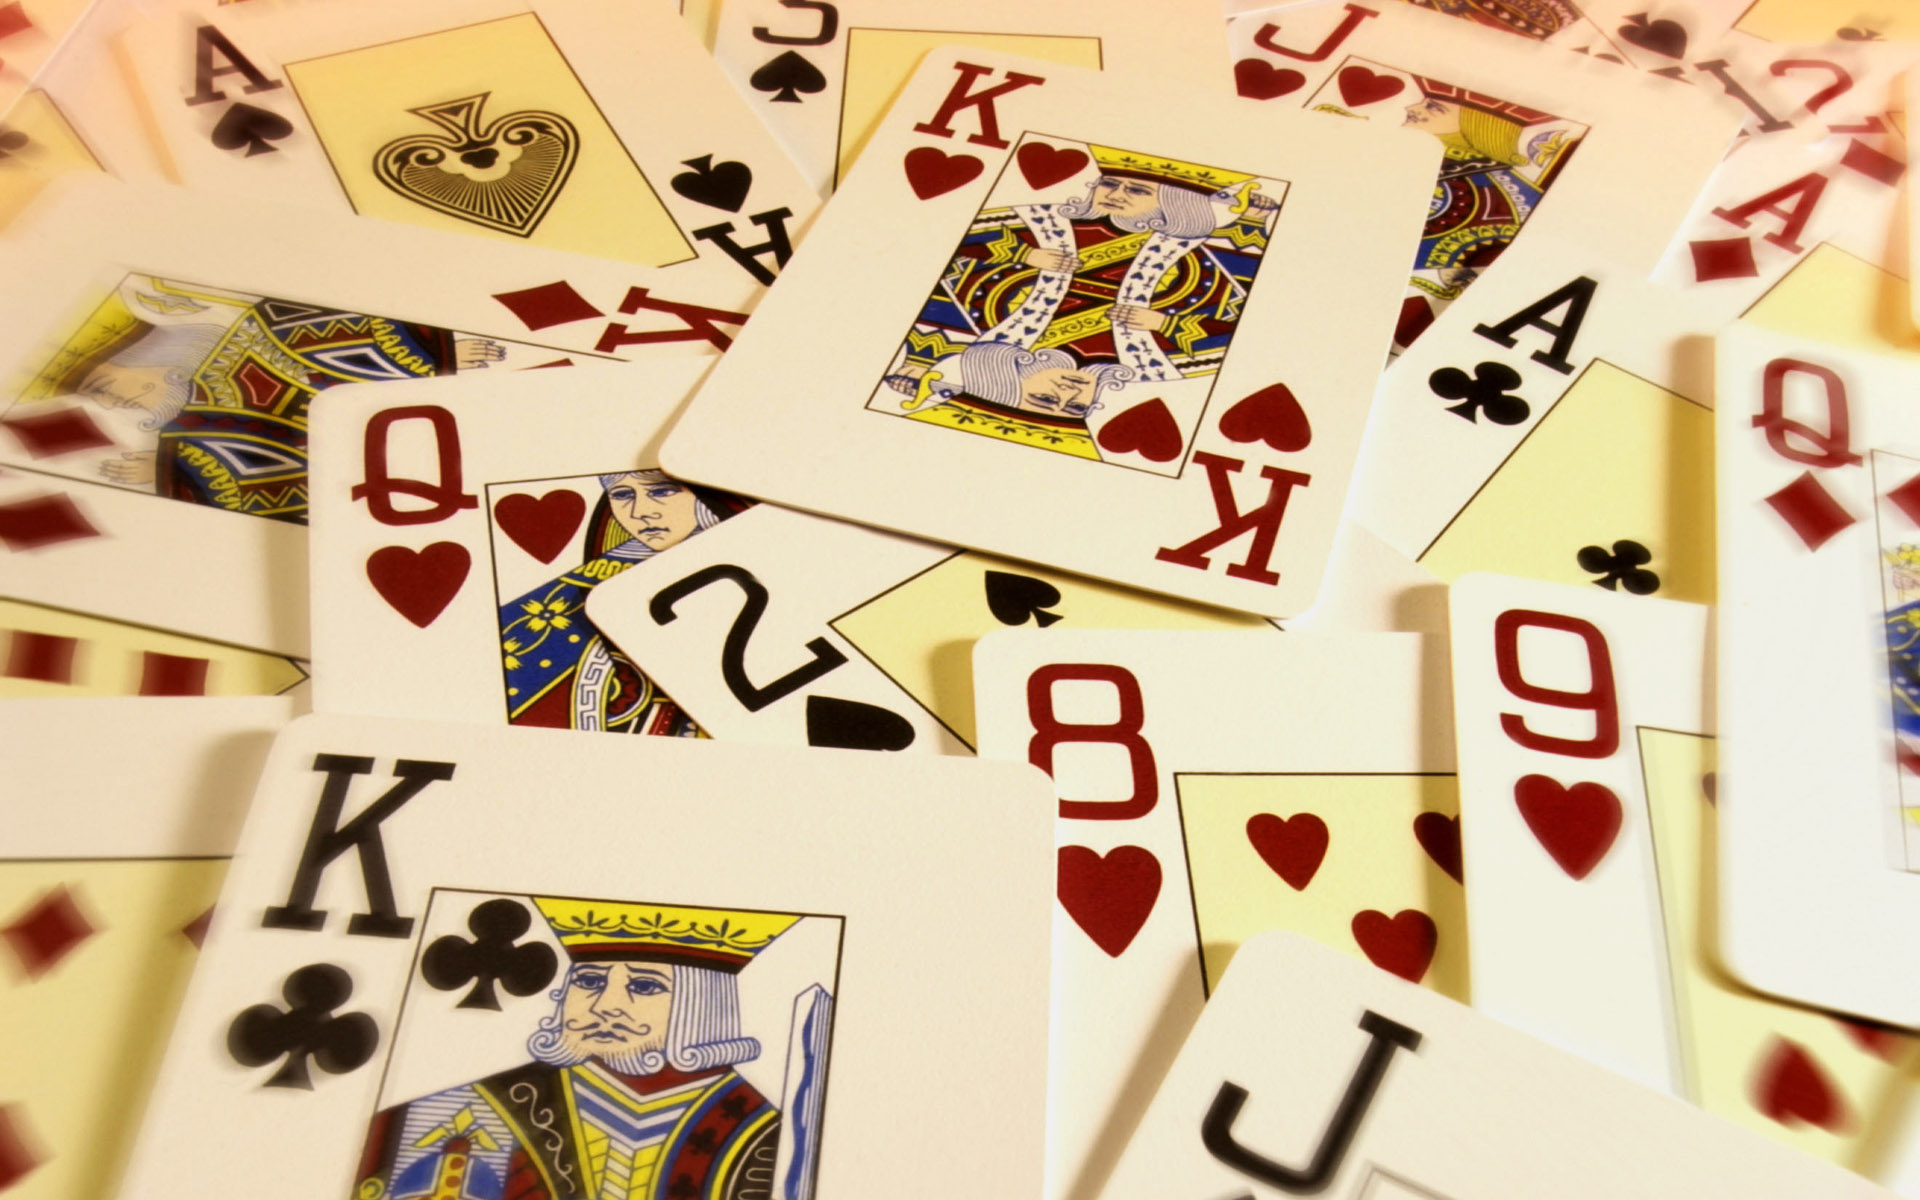 The Top Eight Most Requested Questions On Online Casino